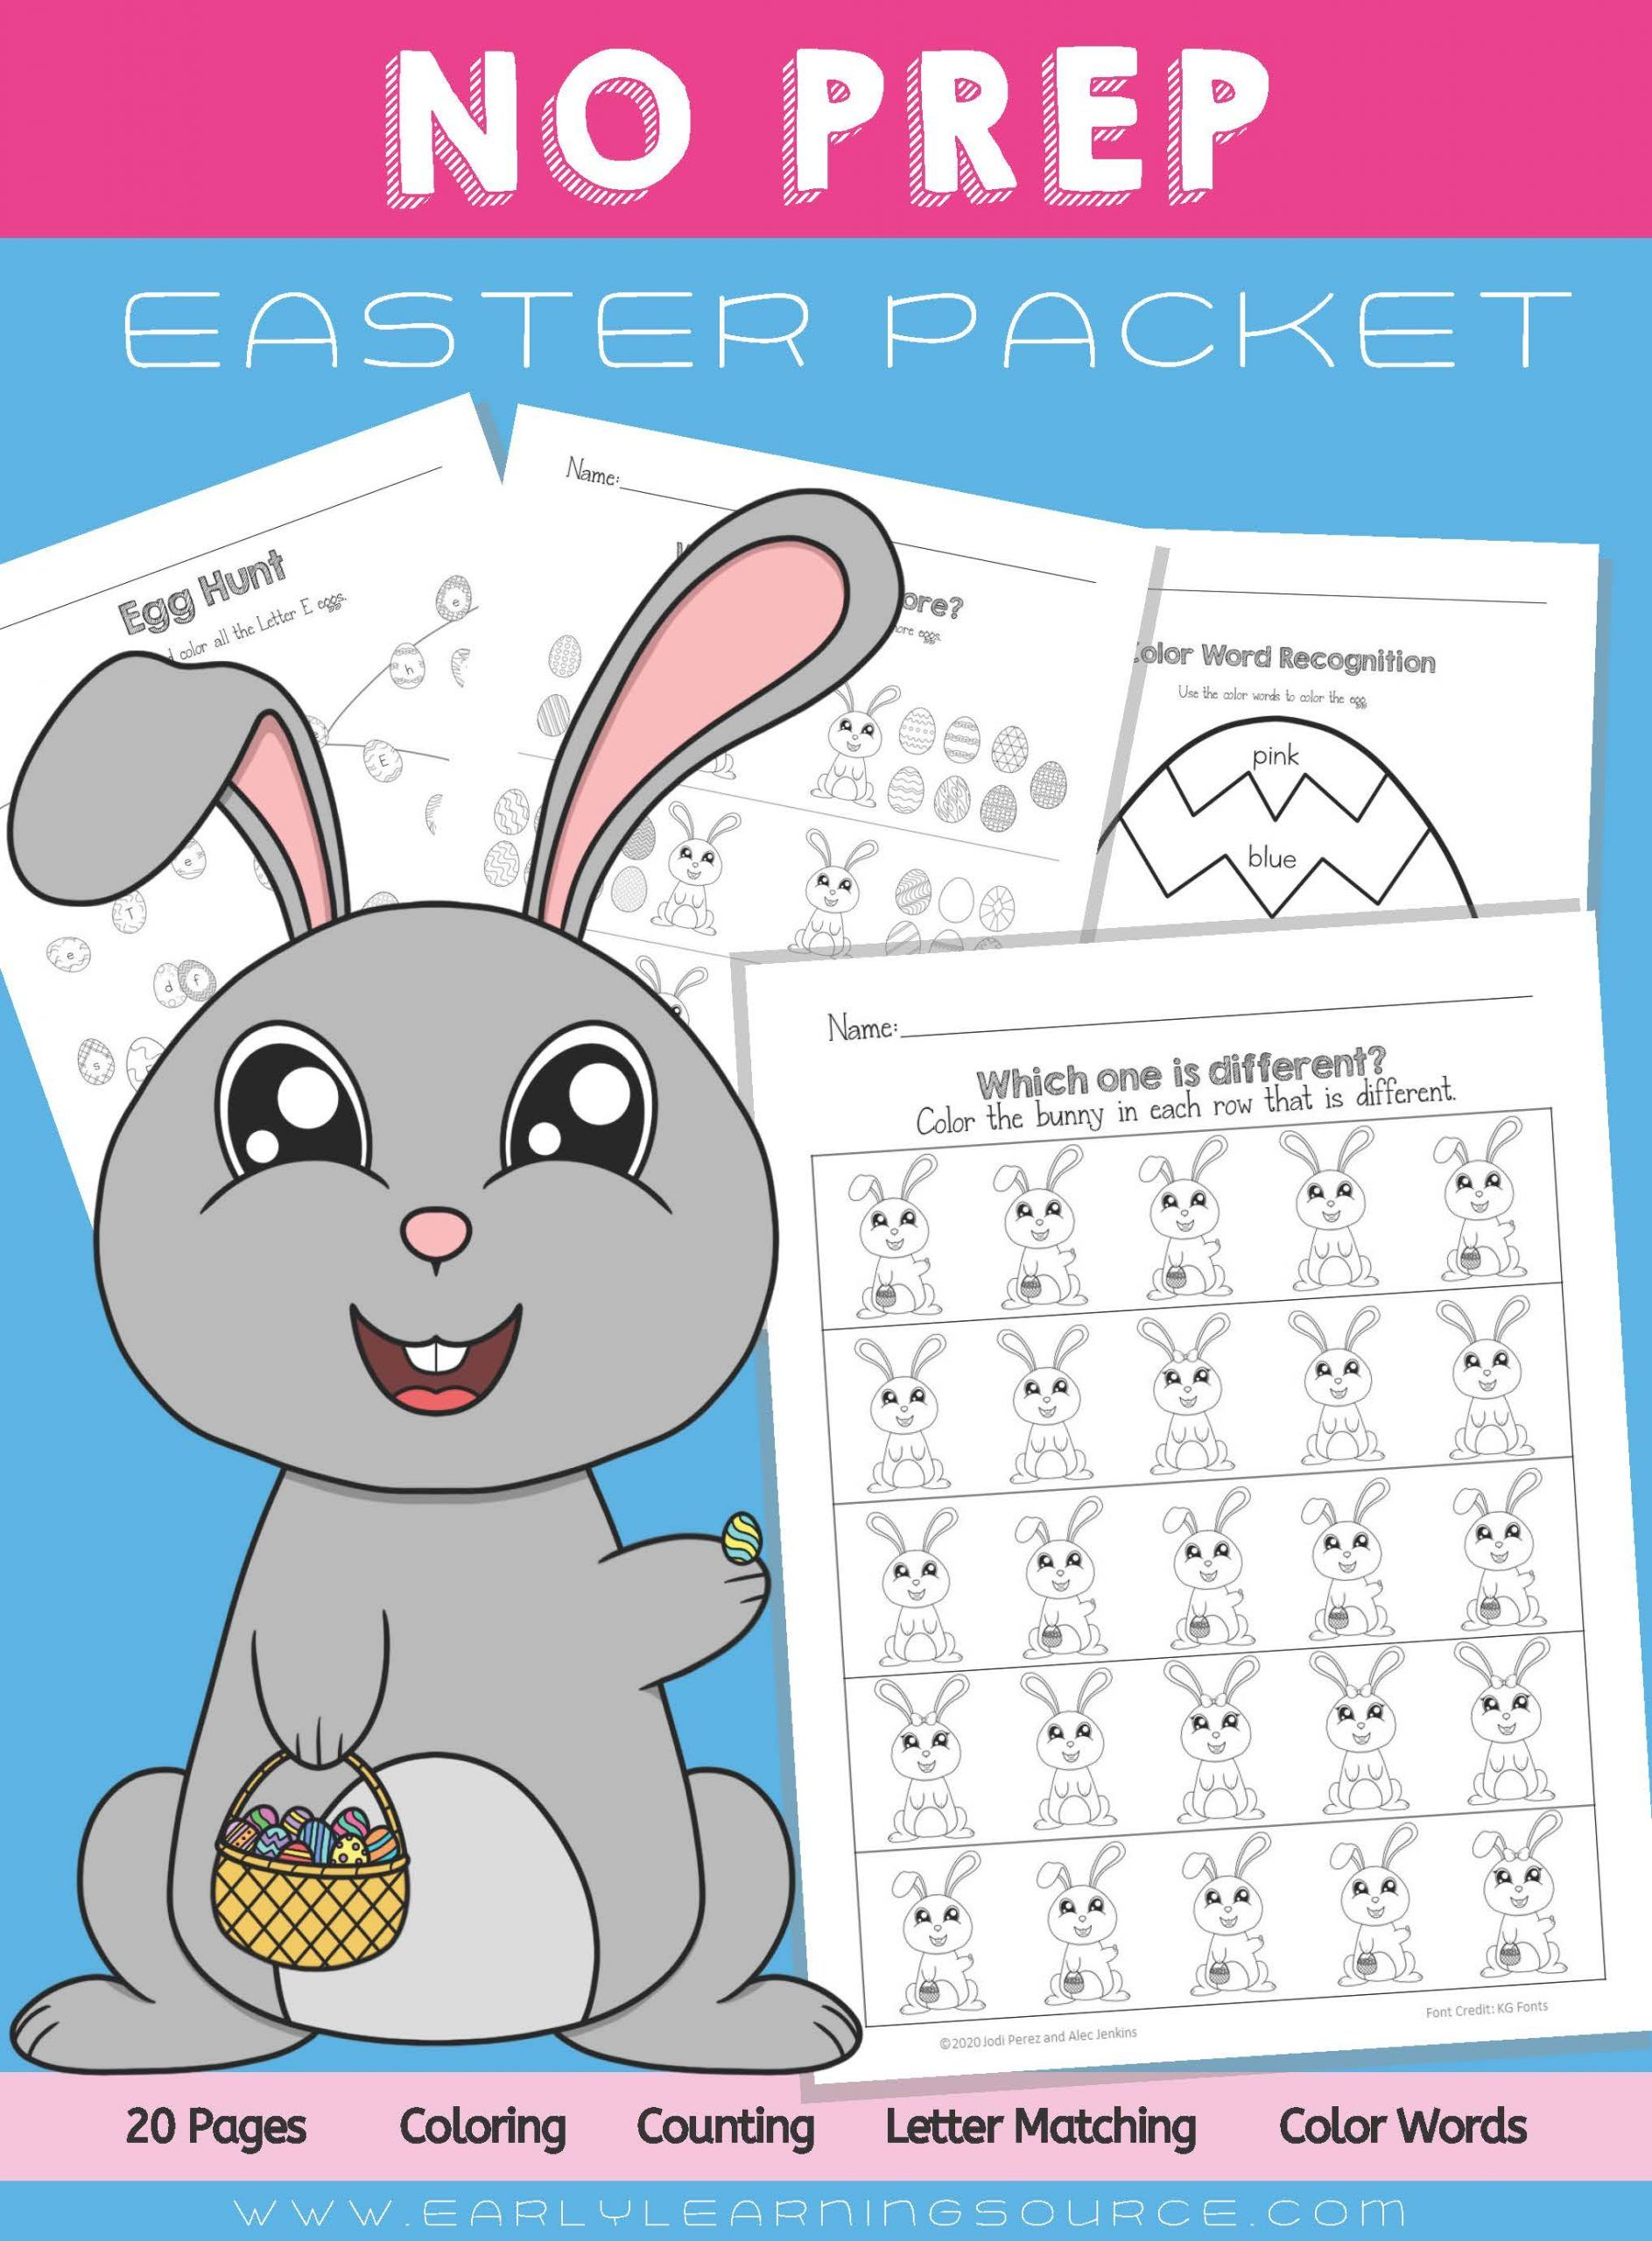 Easy No Prep Easter Packet In